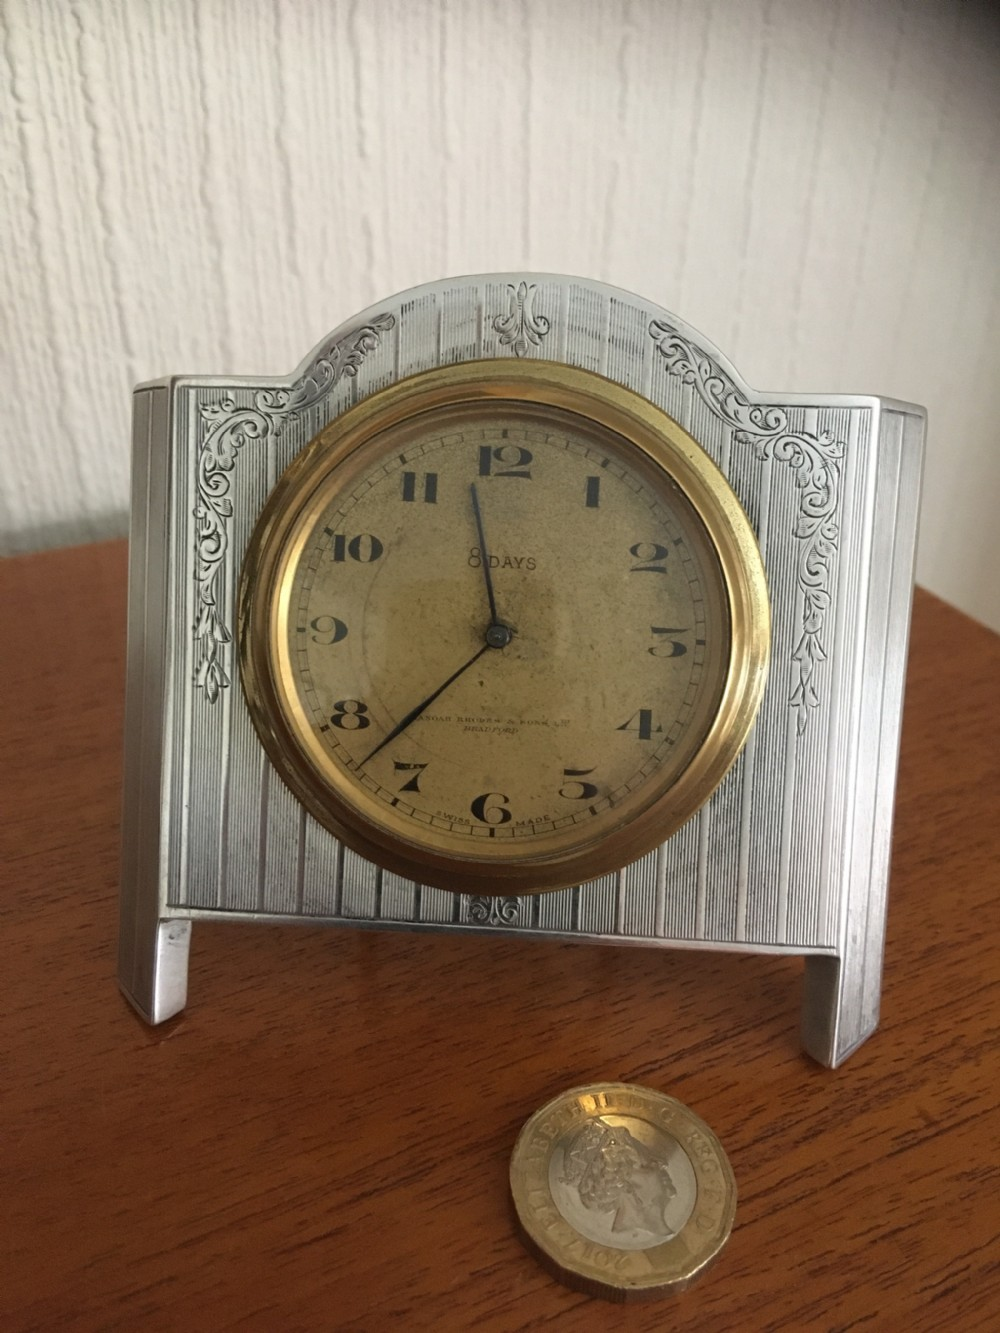 1930s desk or table clock